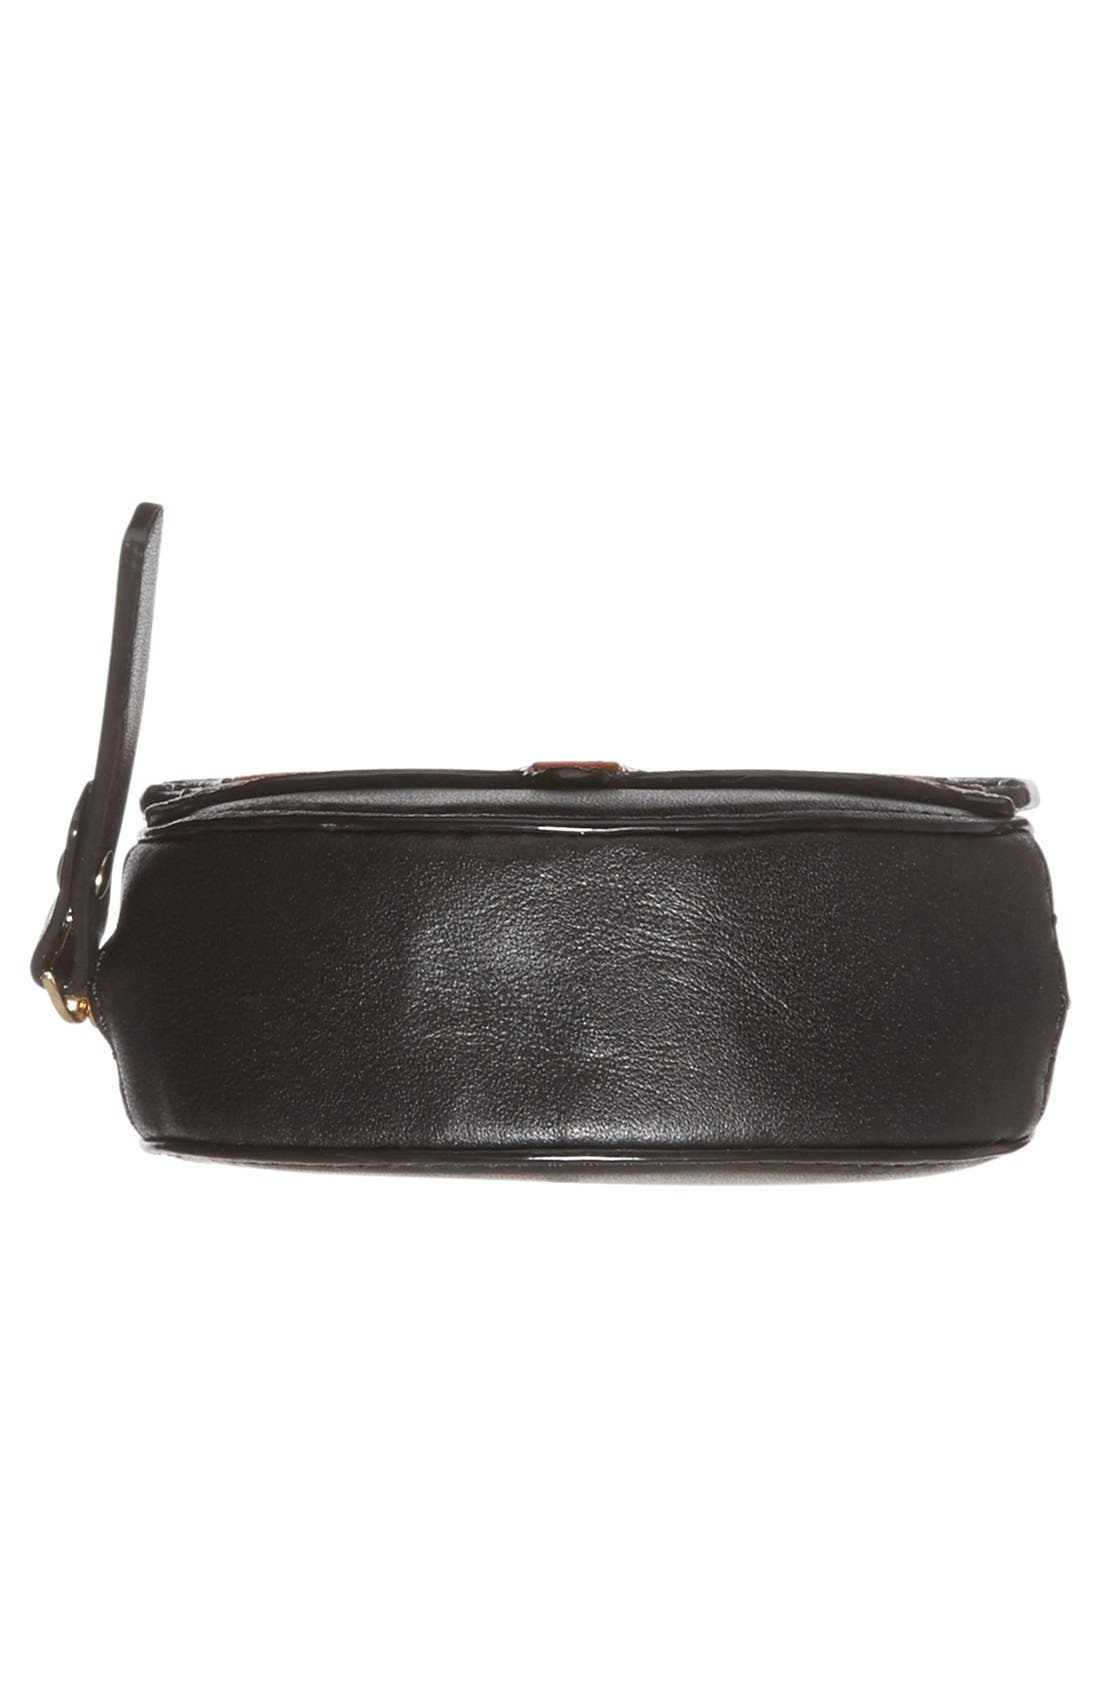 KATE SPADE NEW YORK,                             kate spade new york 'blaze a trail - fox' leather coin purse,                             Alternate thumbnail 5, color,                             001